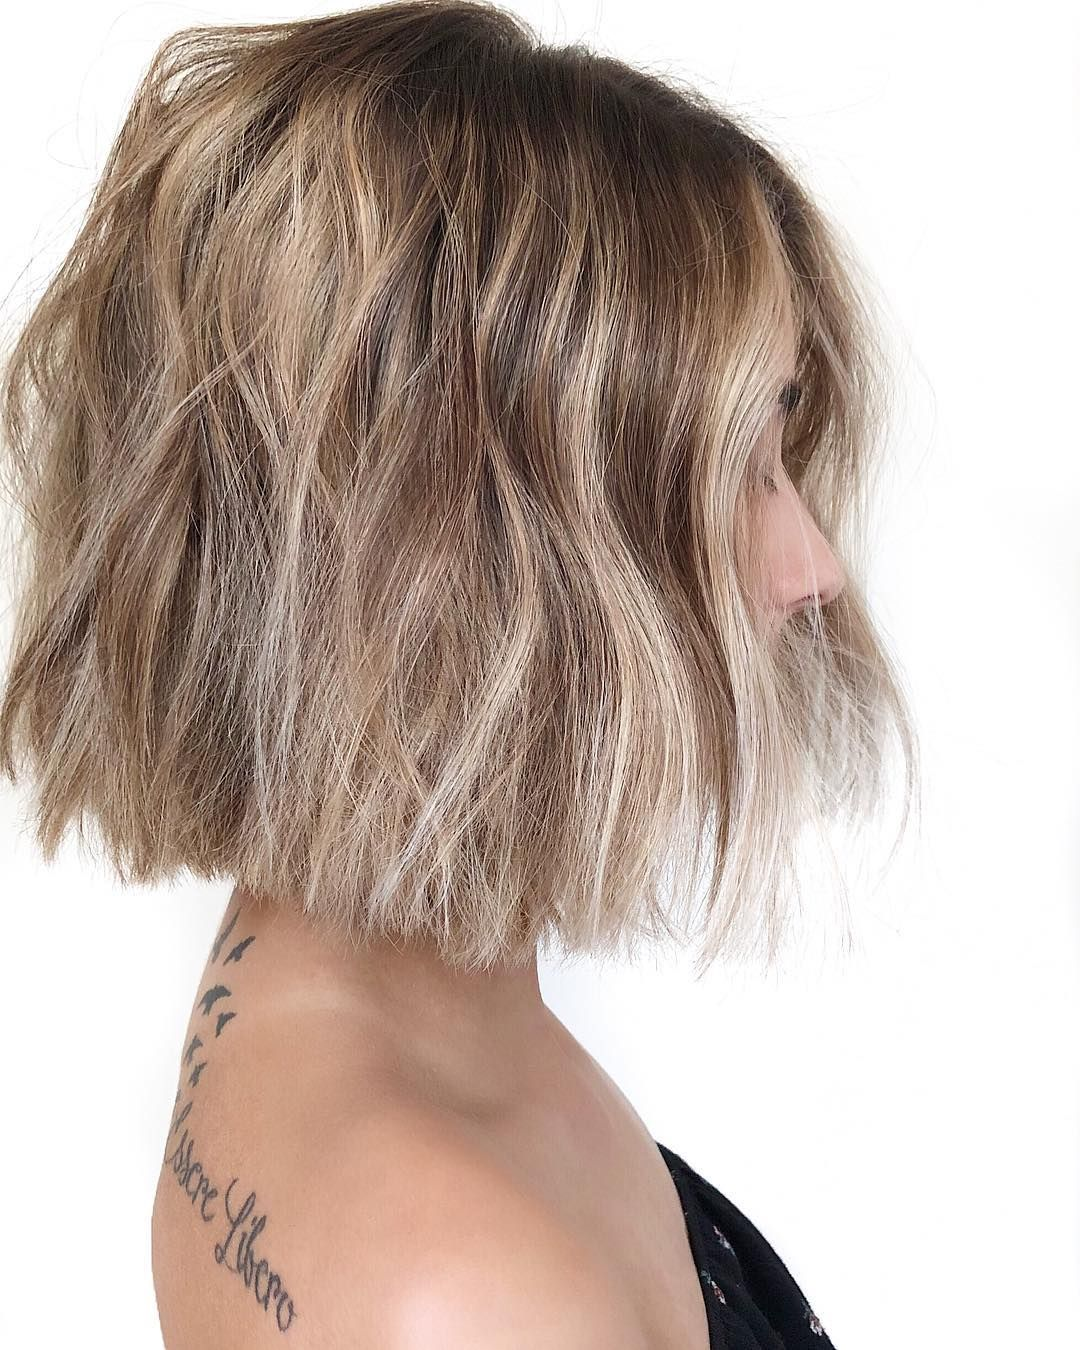 10 Trendy Messy Bob Hairstyles and Haircuts, 2021